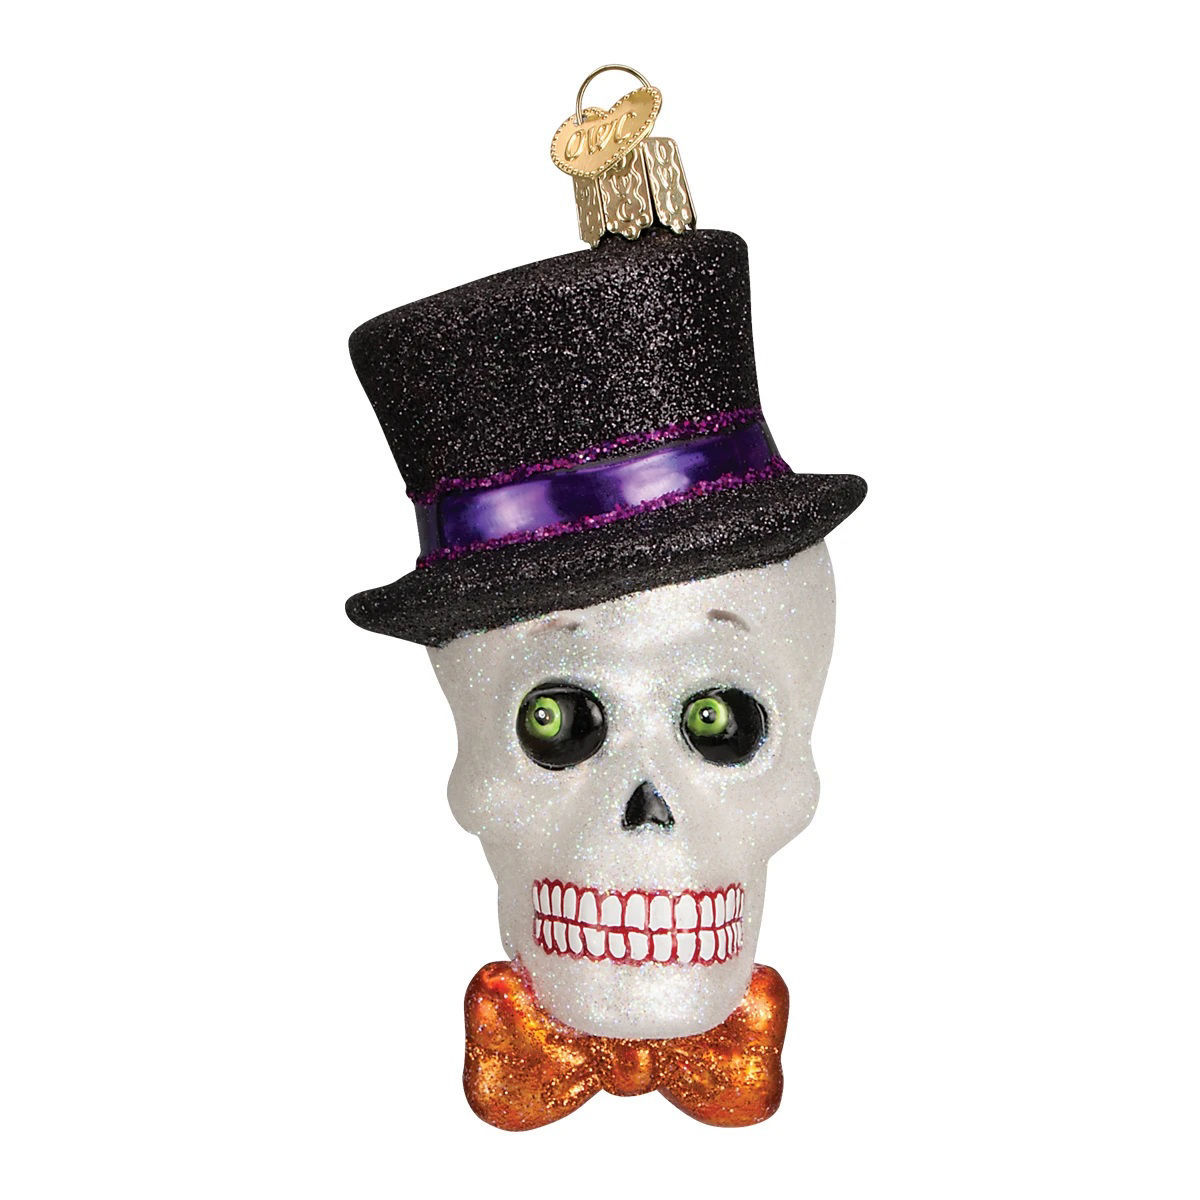 Top Hat Skeleton Ornament by Old World Christmas